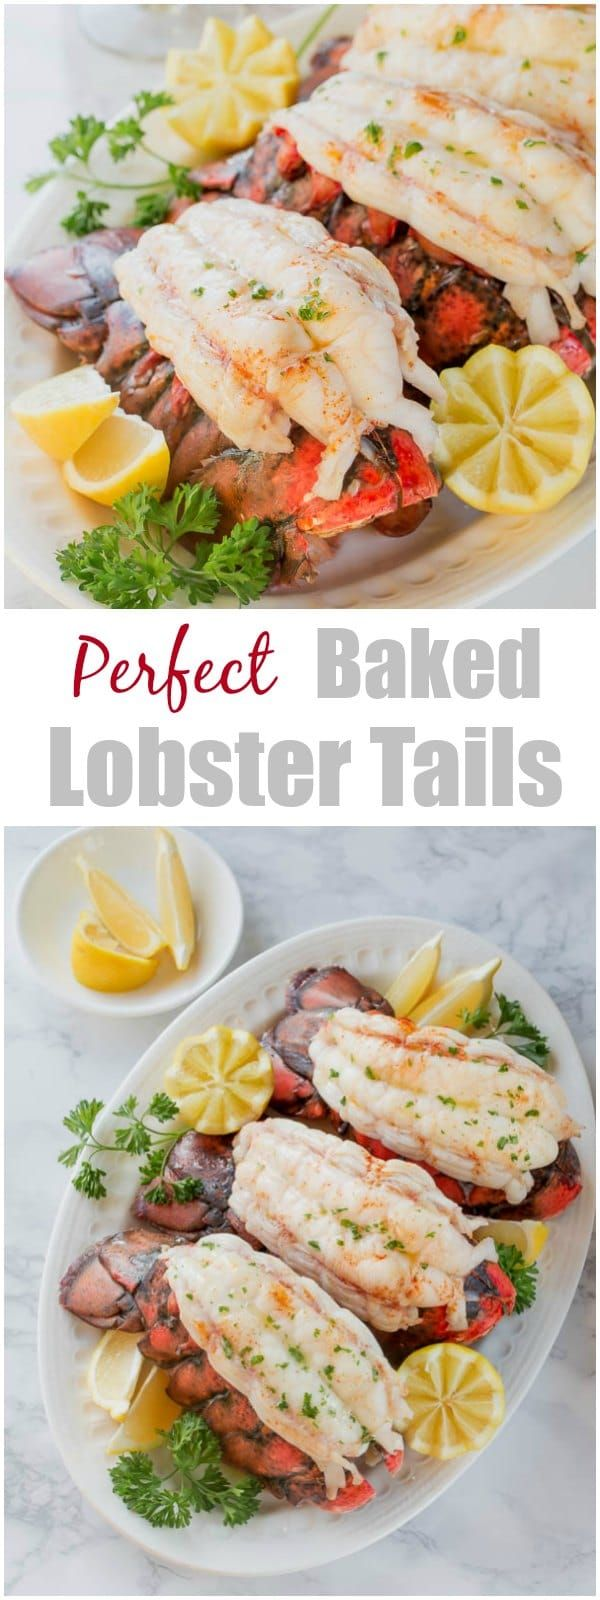 Baked Lobster Tails + Video ~Sweet & Savory